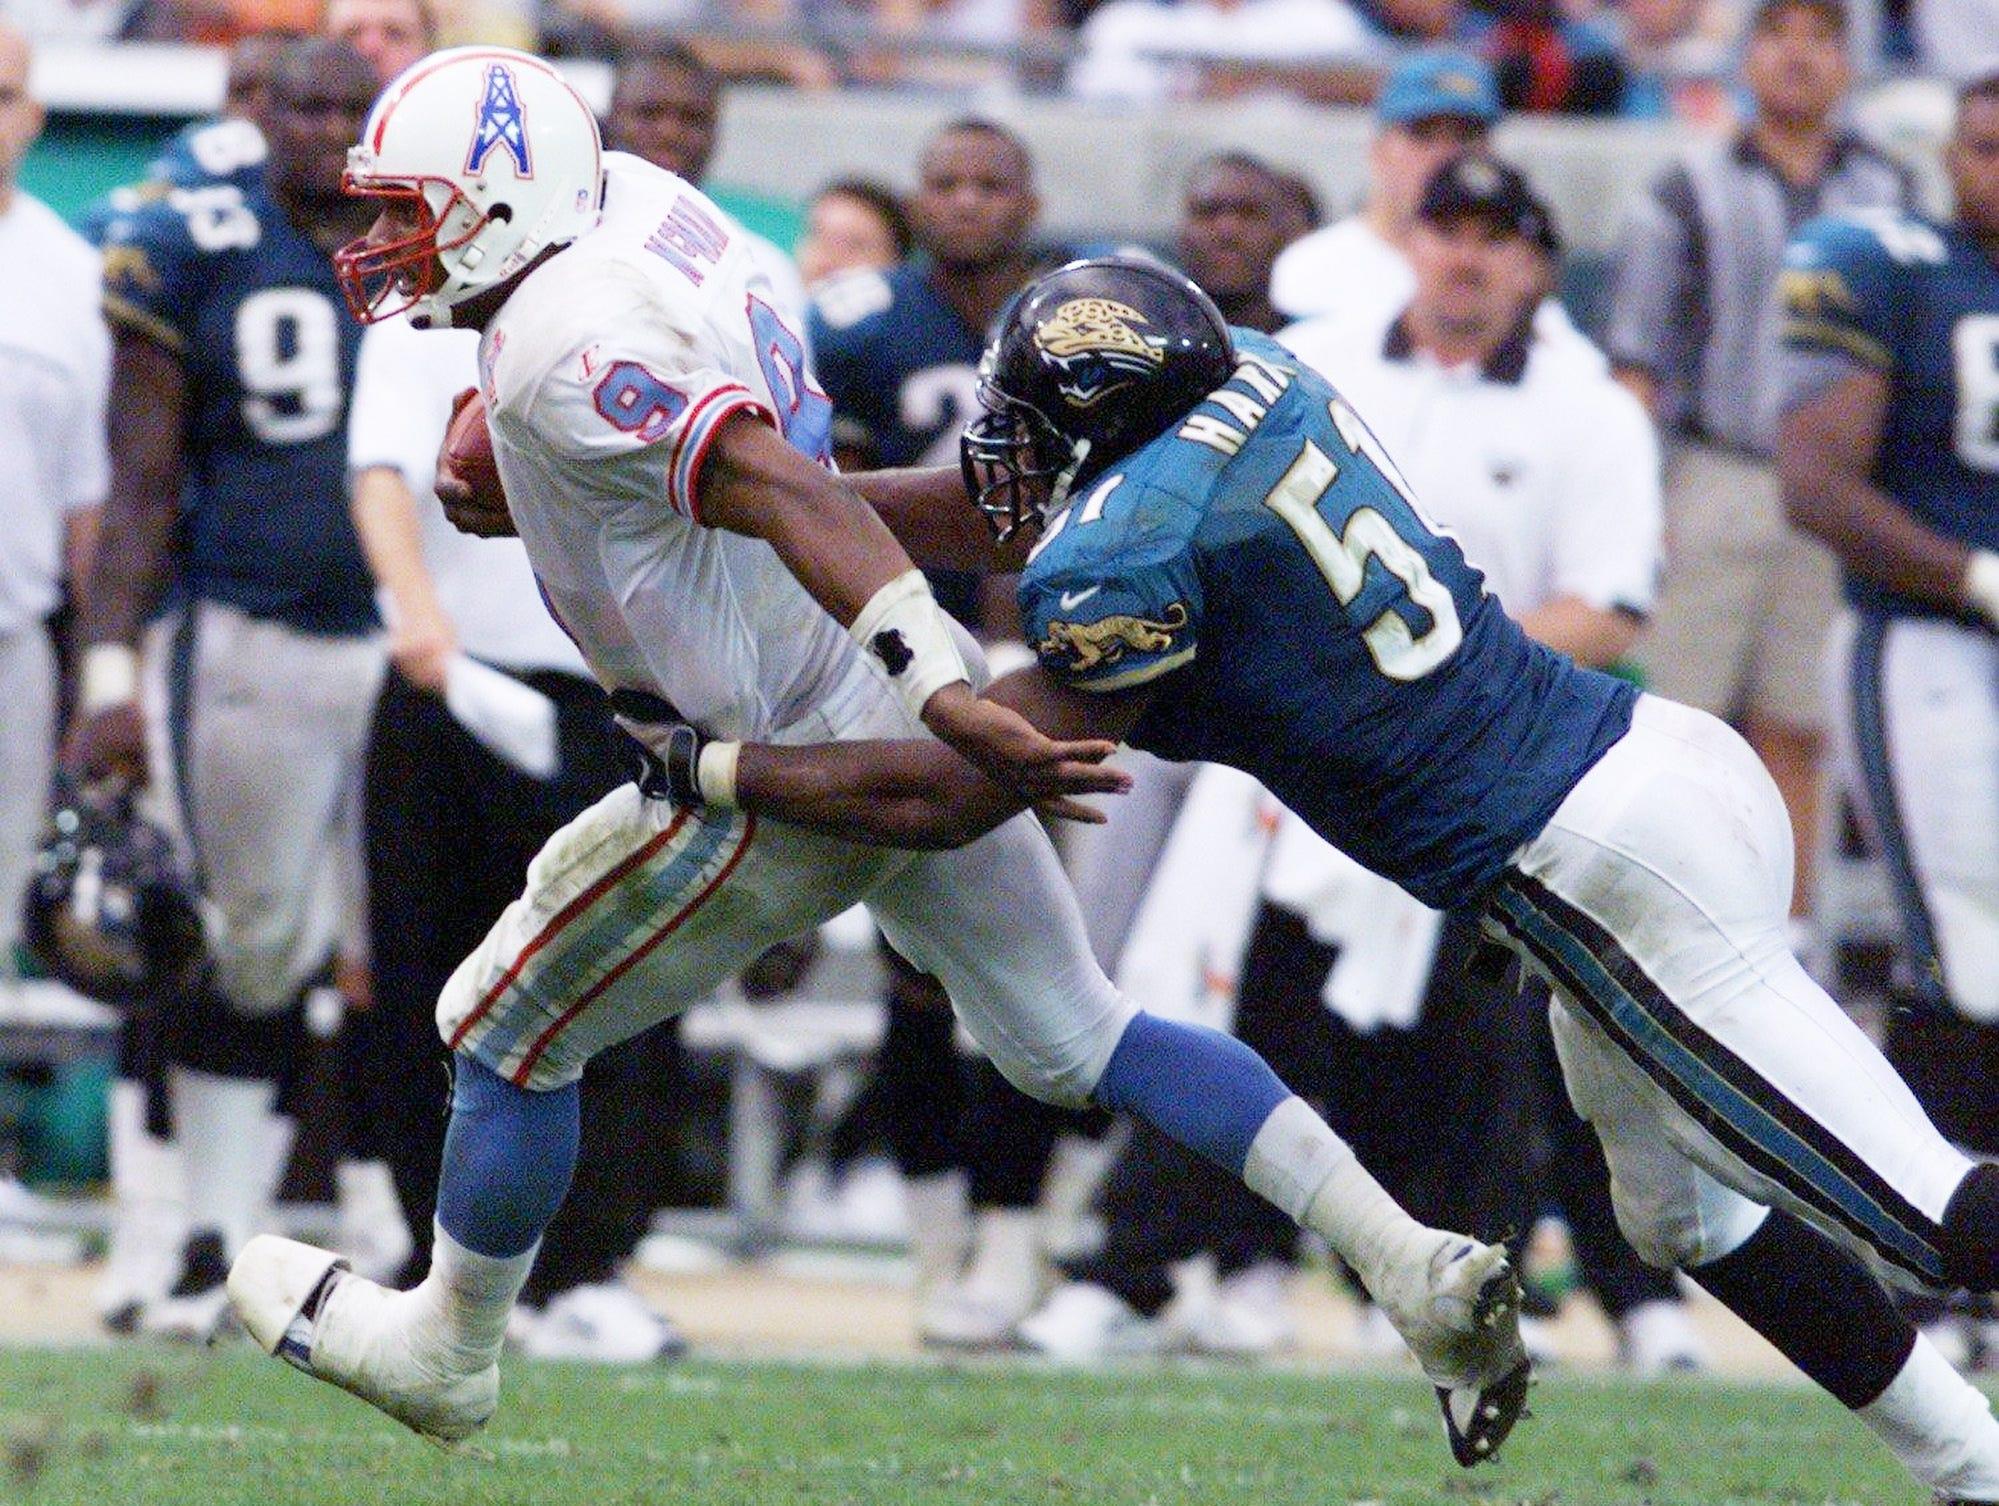 Tennessee Oilers quarterback Steve McNair (9) tries to escape from Kevin Hardy of the Jacksonville Jaguars as he scrambles for yard late in the fourth quarter. The Oilers won the road game 16-13 Dec. 13, 1998.